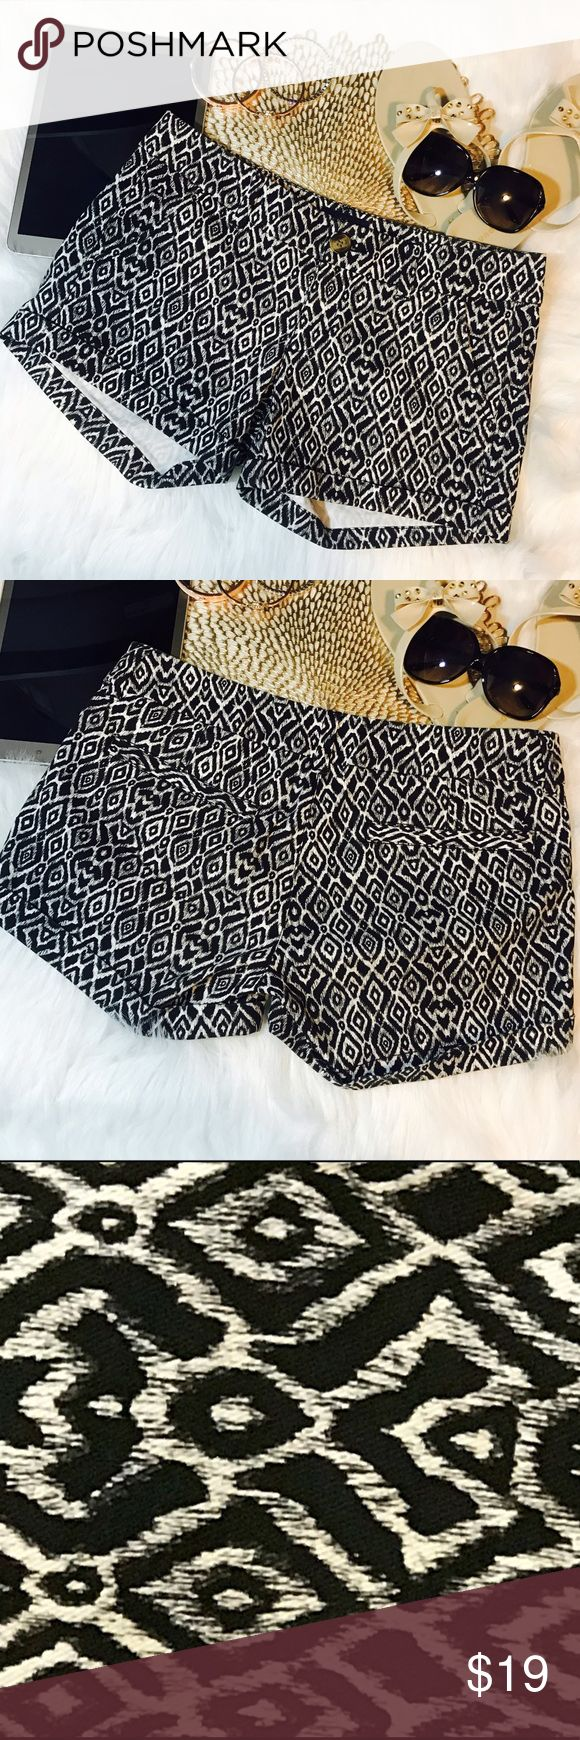 AEO Midi Stretch Boho Print Shorts Black and White boho Aztec print midi shorts with stretch fabric American Eagle Outfitters Shorts